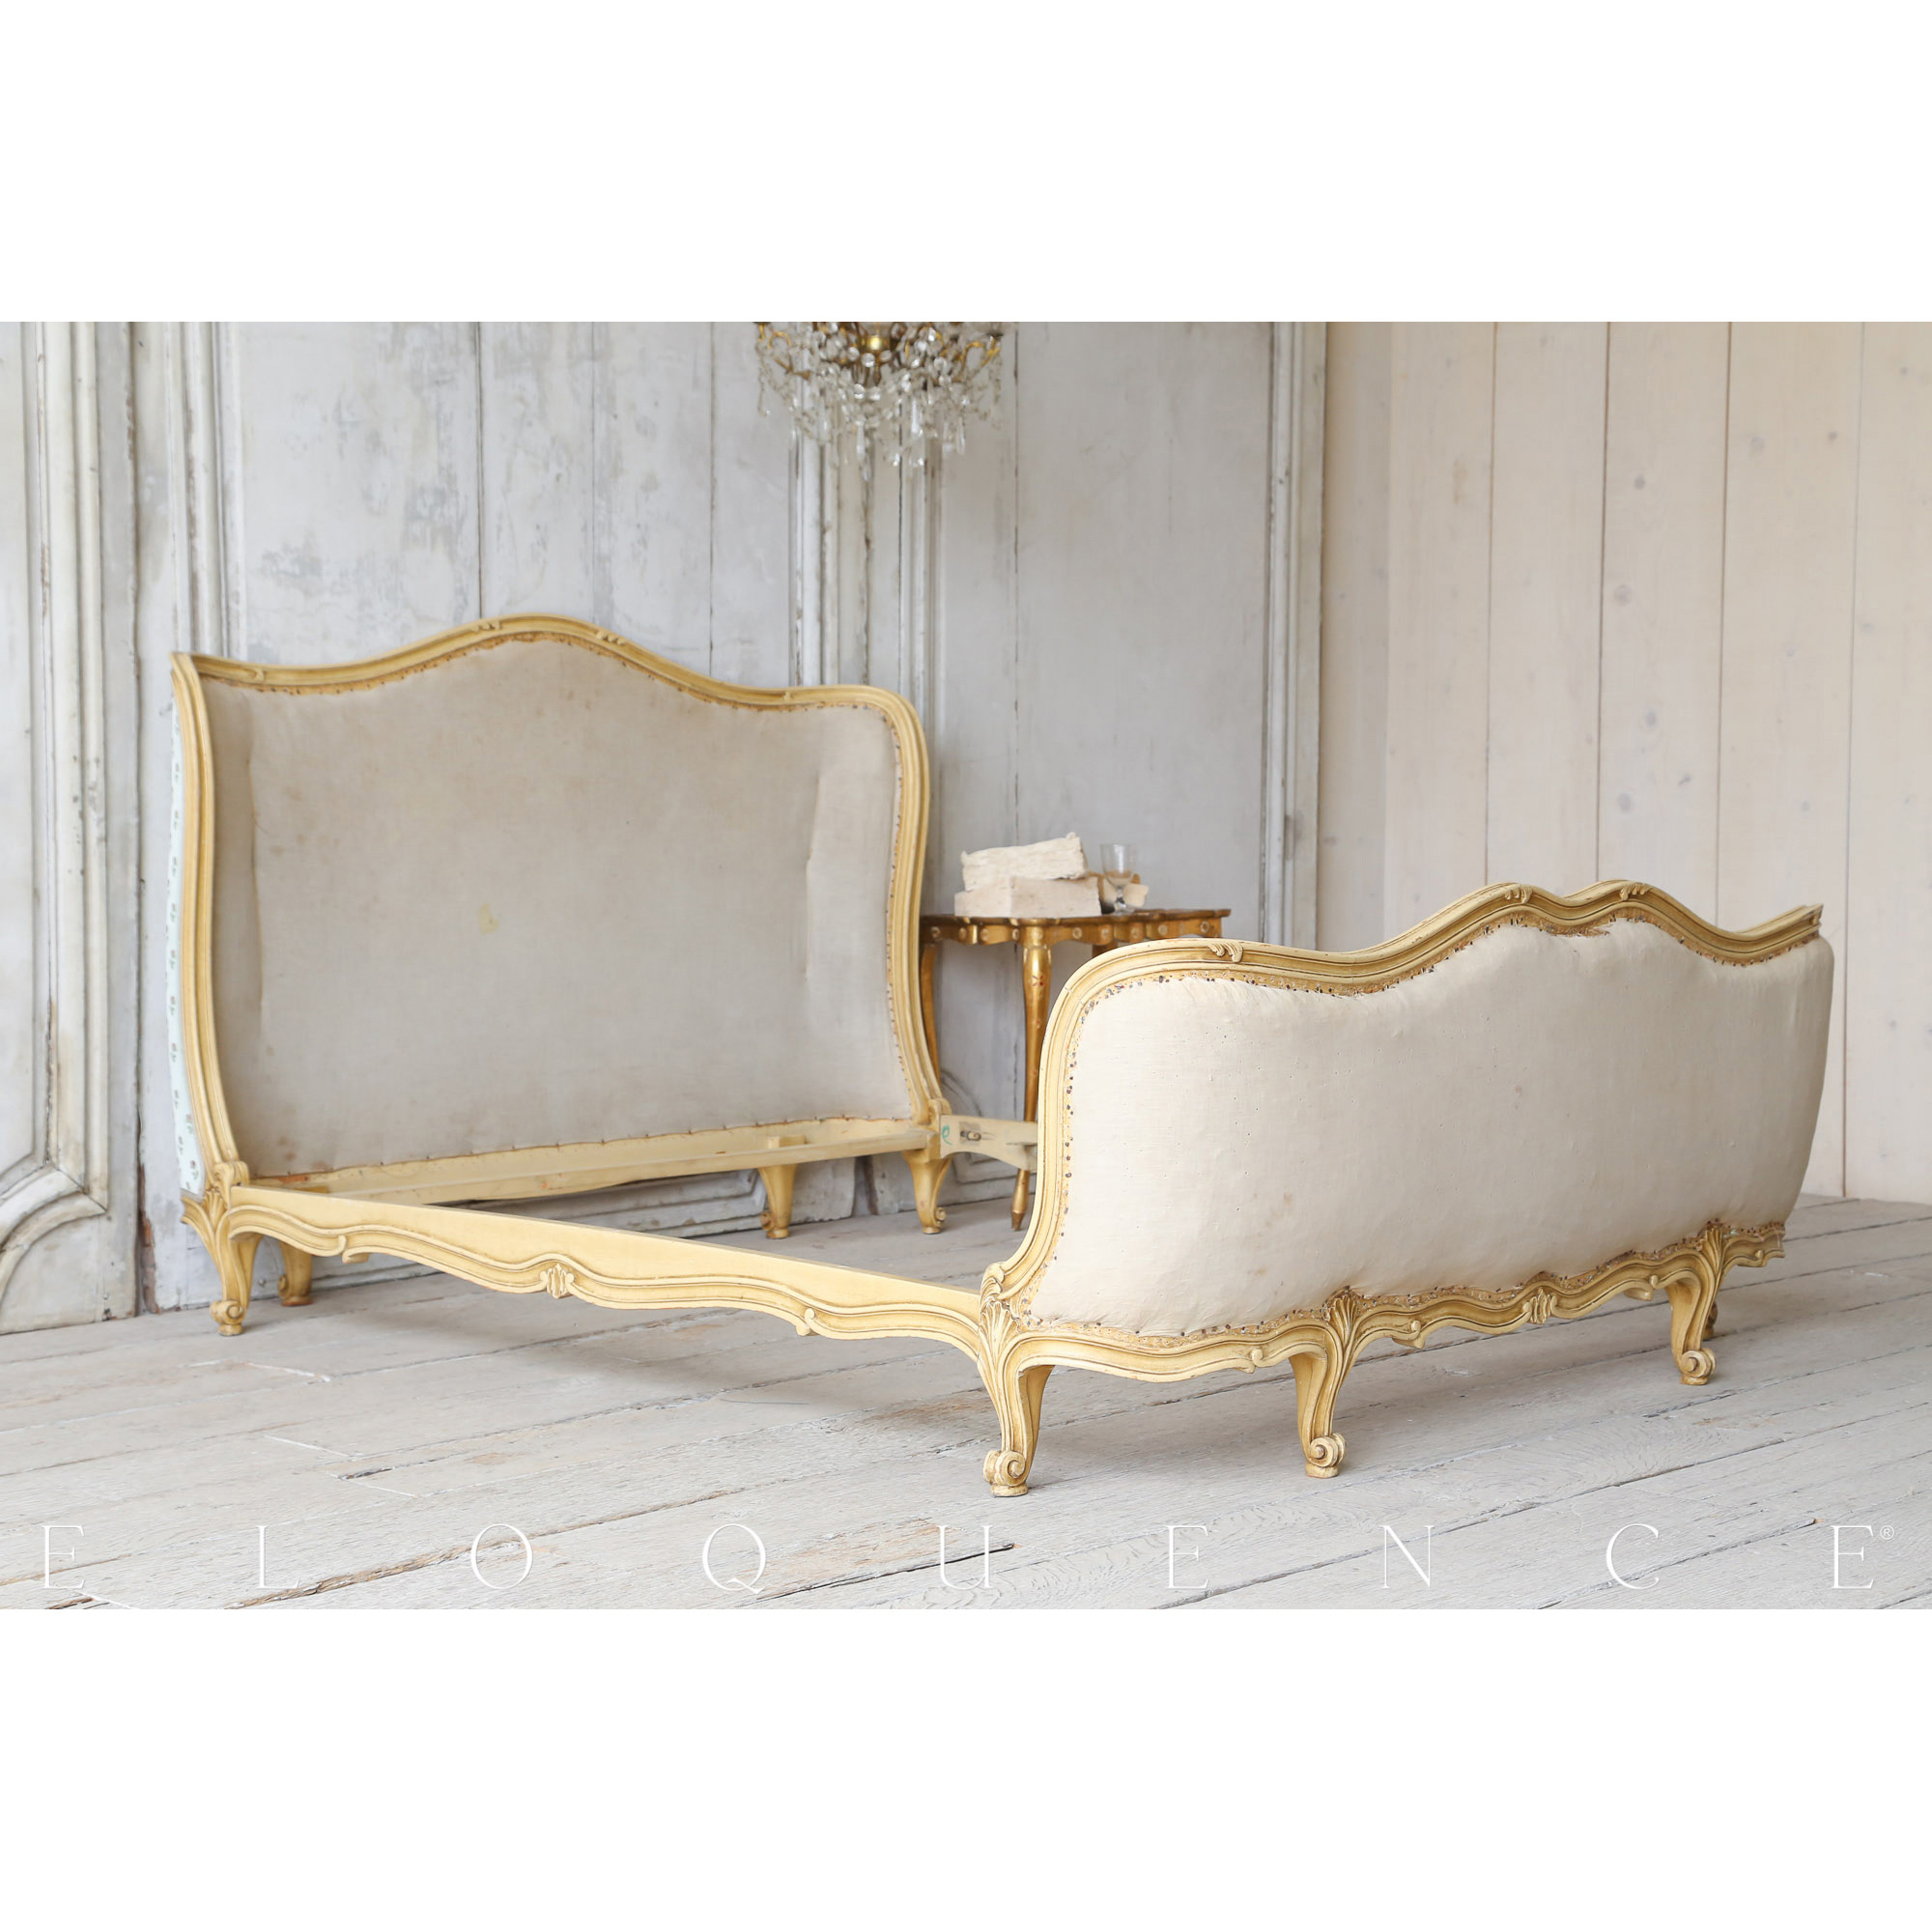 beds louis olive xvi velvet product productlist kuo home maroon french bed eclectic kathy designer antique eloquence